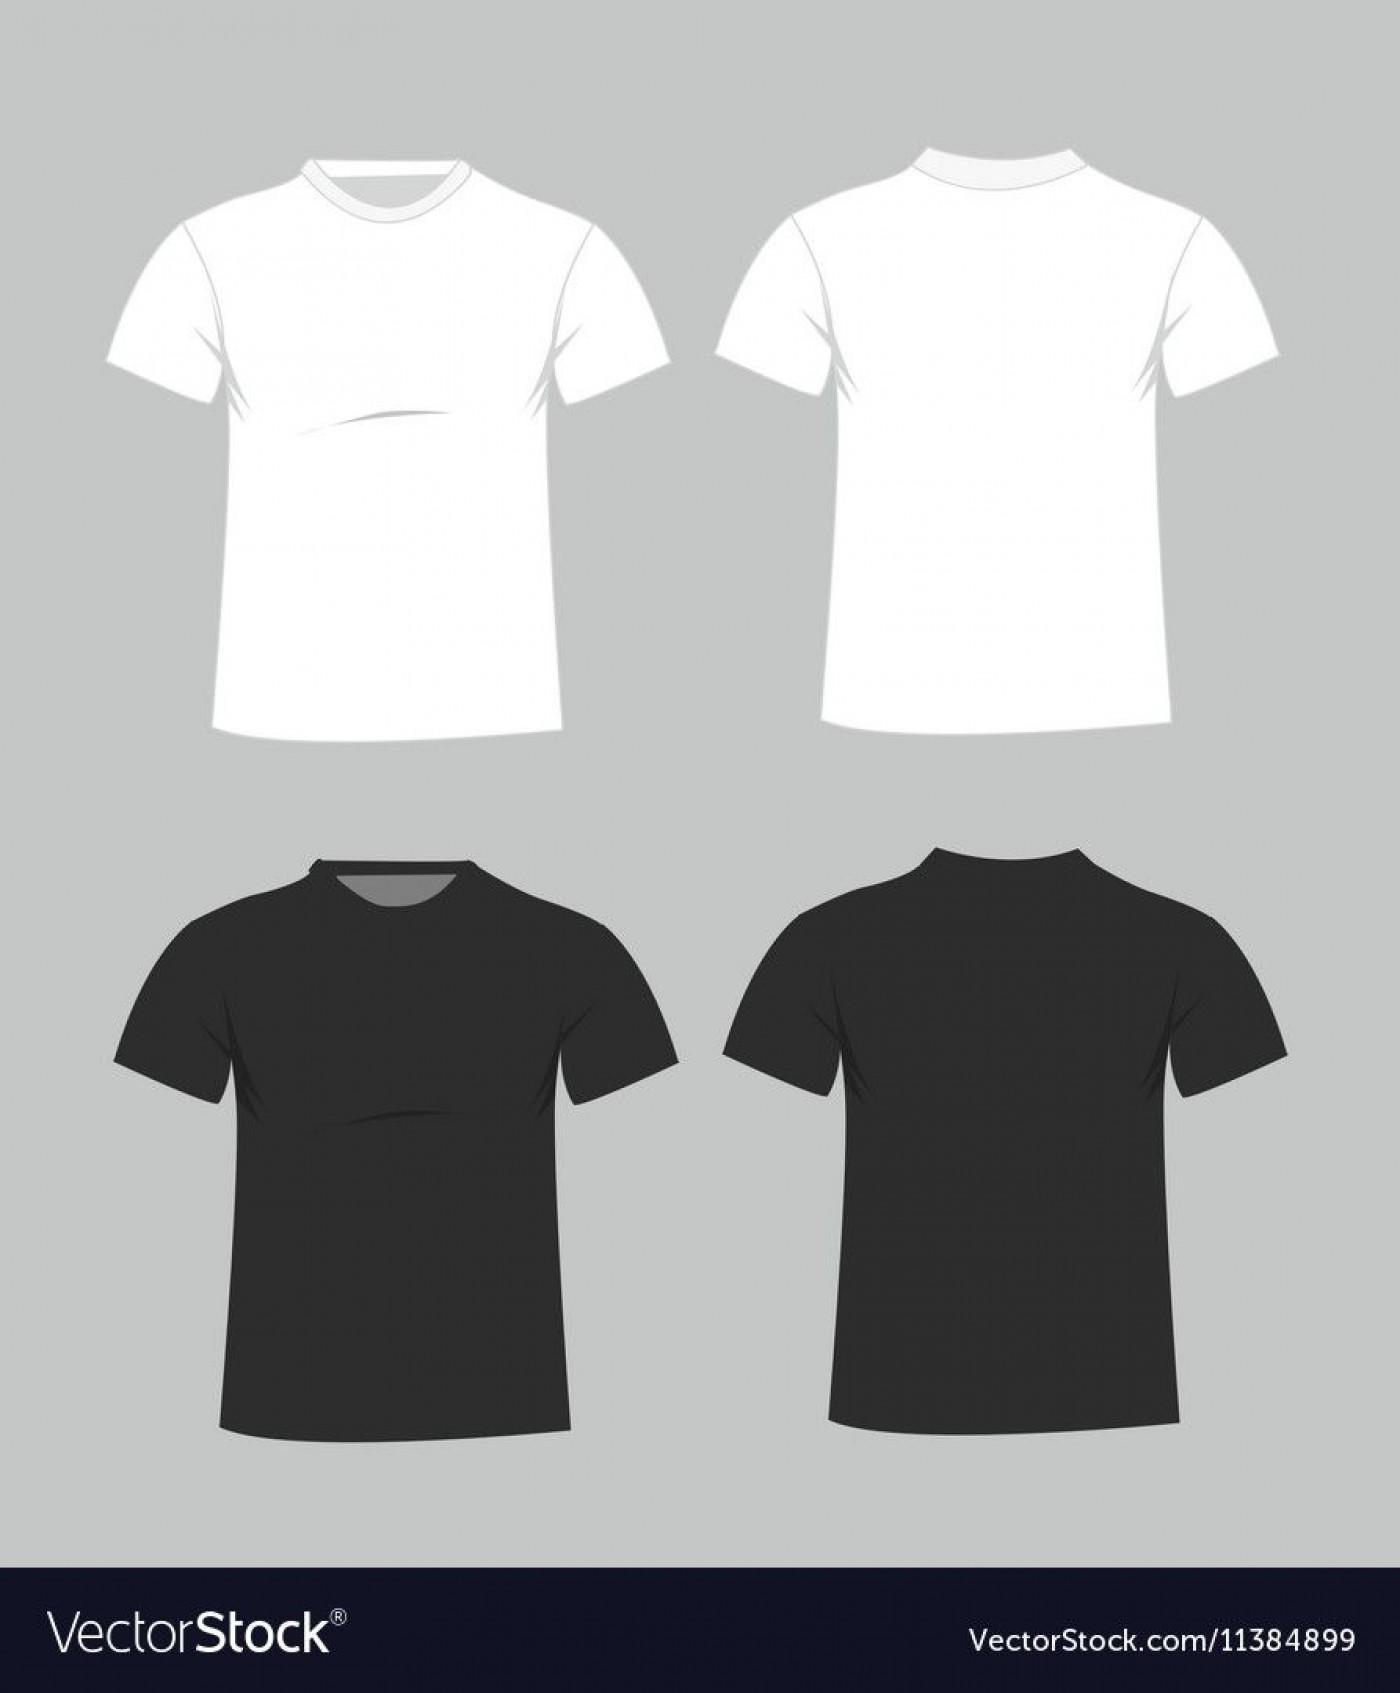 005 Imposing T Shirt Template Free High Resolution  Adobe Illustrator Download Men' T-shirt Design Polo1400